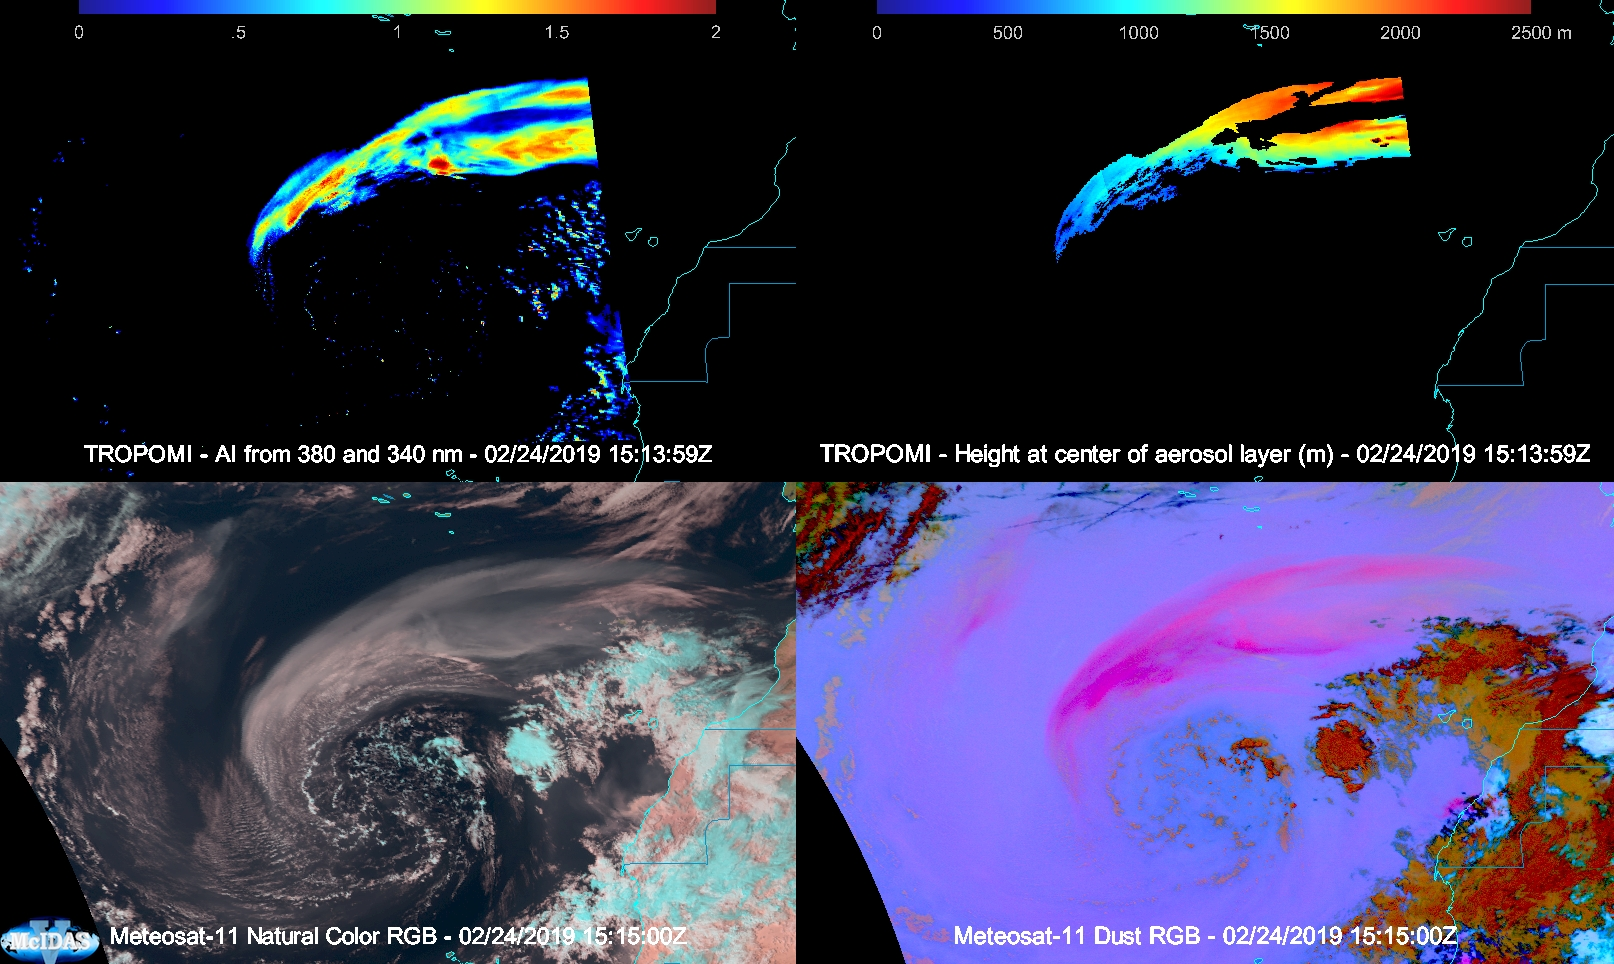 Panel 1: TROPOMI Aerosol Index Panel 2: TROPOMI Aerosol layer height (meters) Panel 3: Meteosat-11 Natural Color RGB Panel 4: Meteosat-11 Dust RGB [click to enlarge]